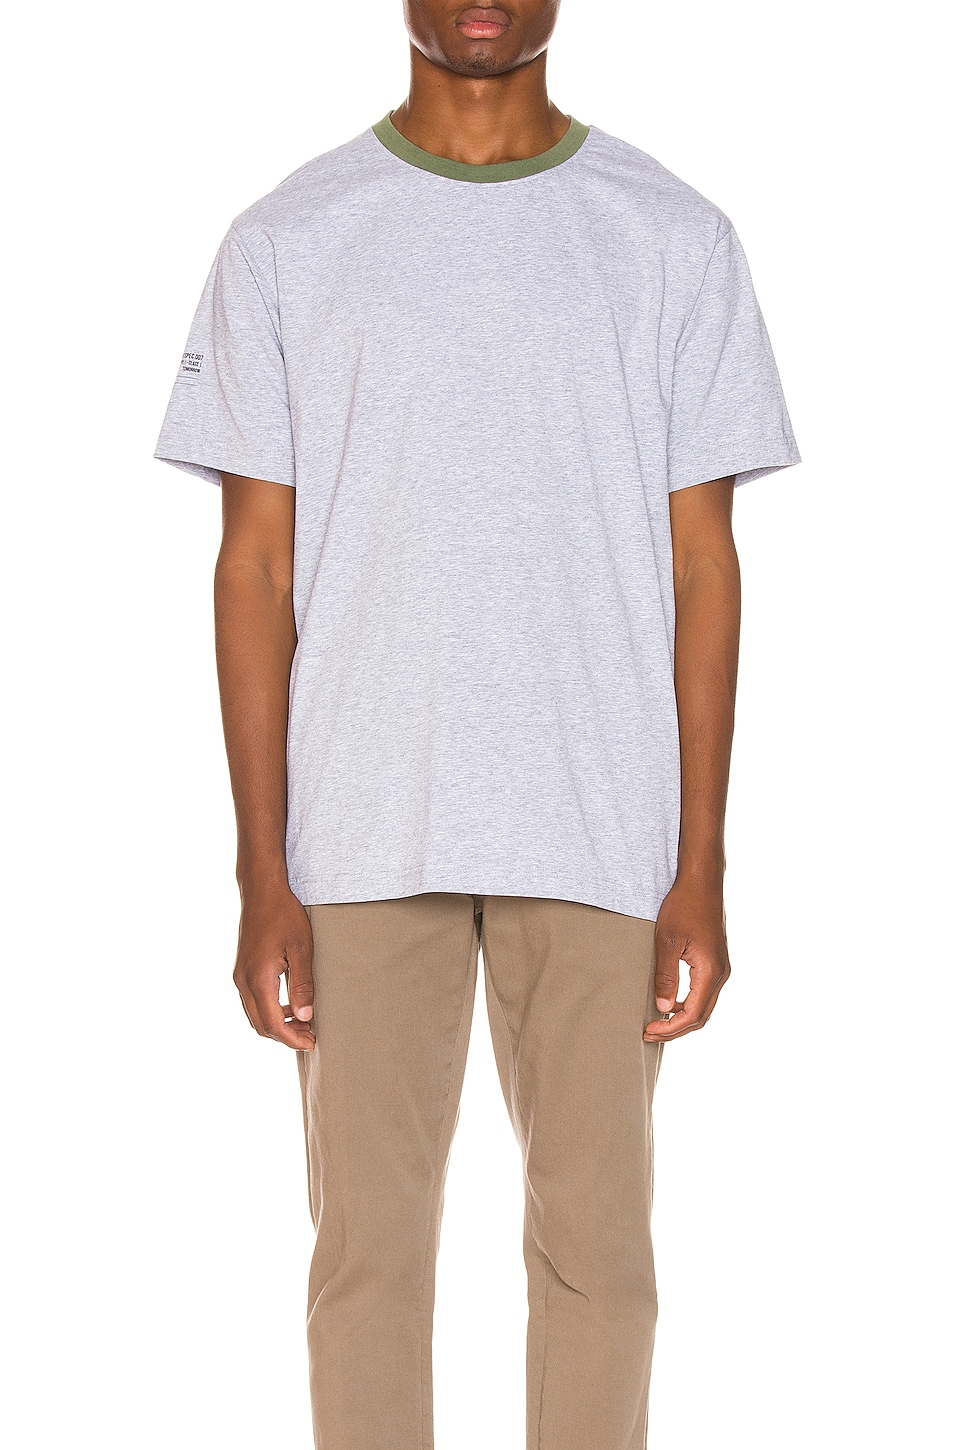 Publish Fabe Tee in Heather